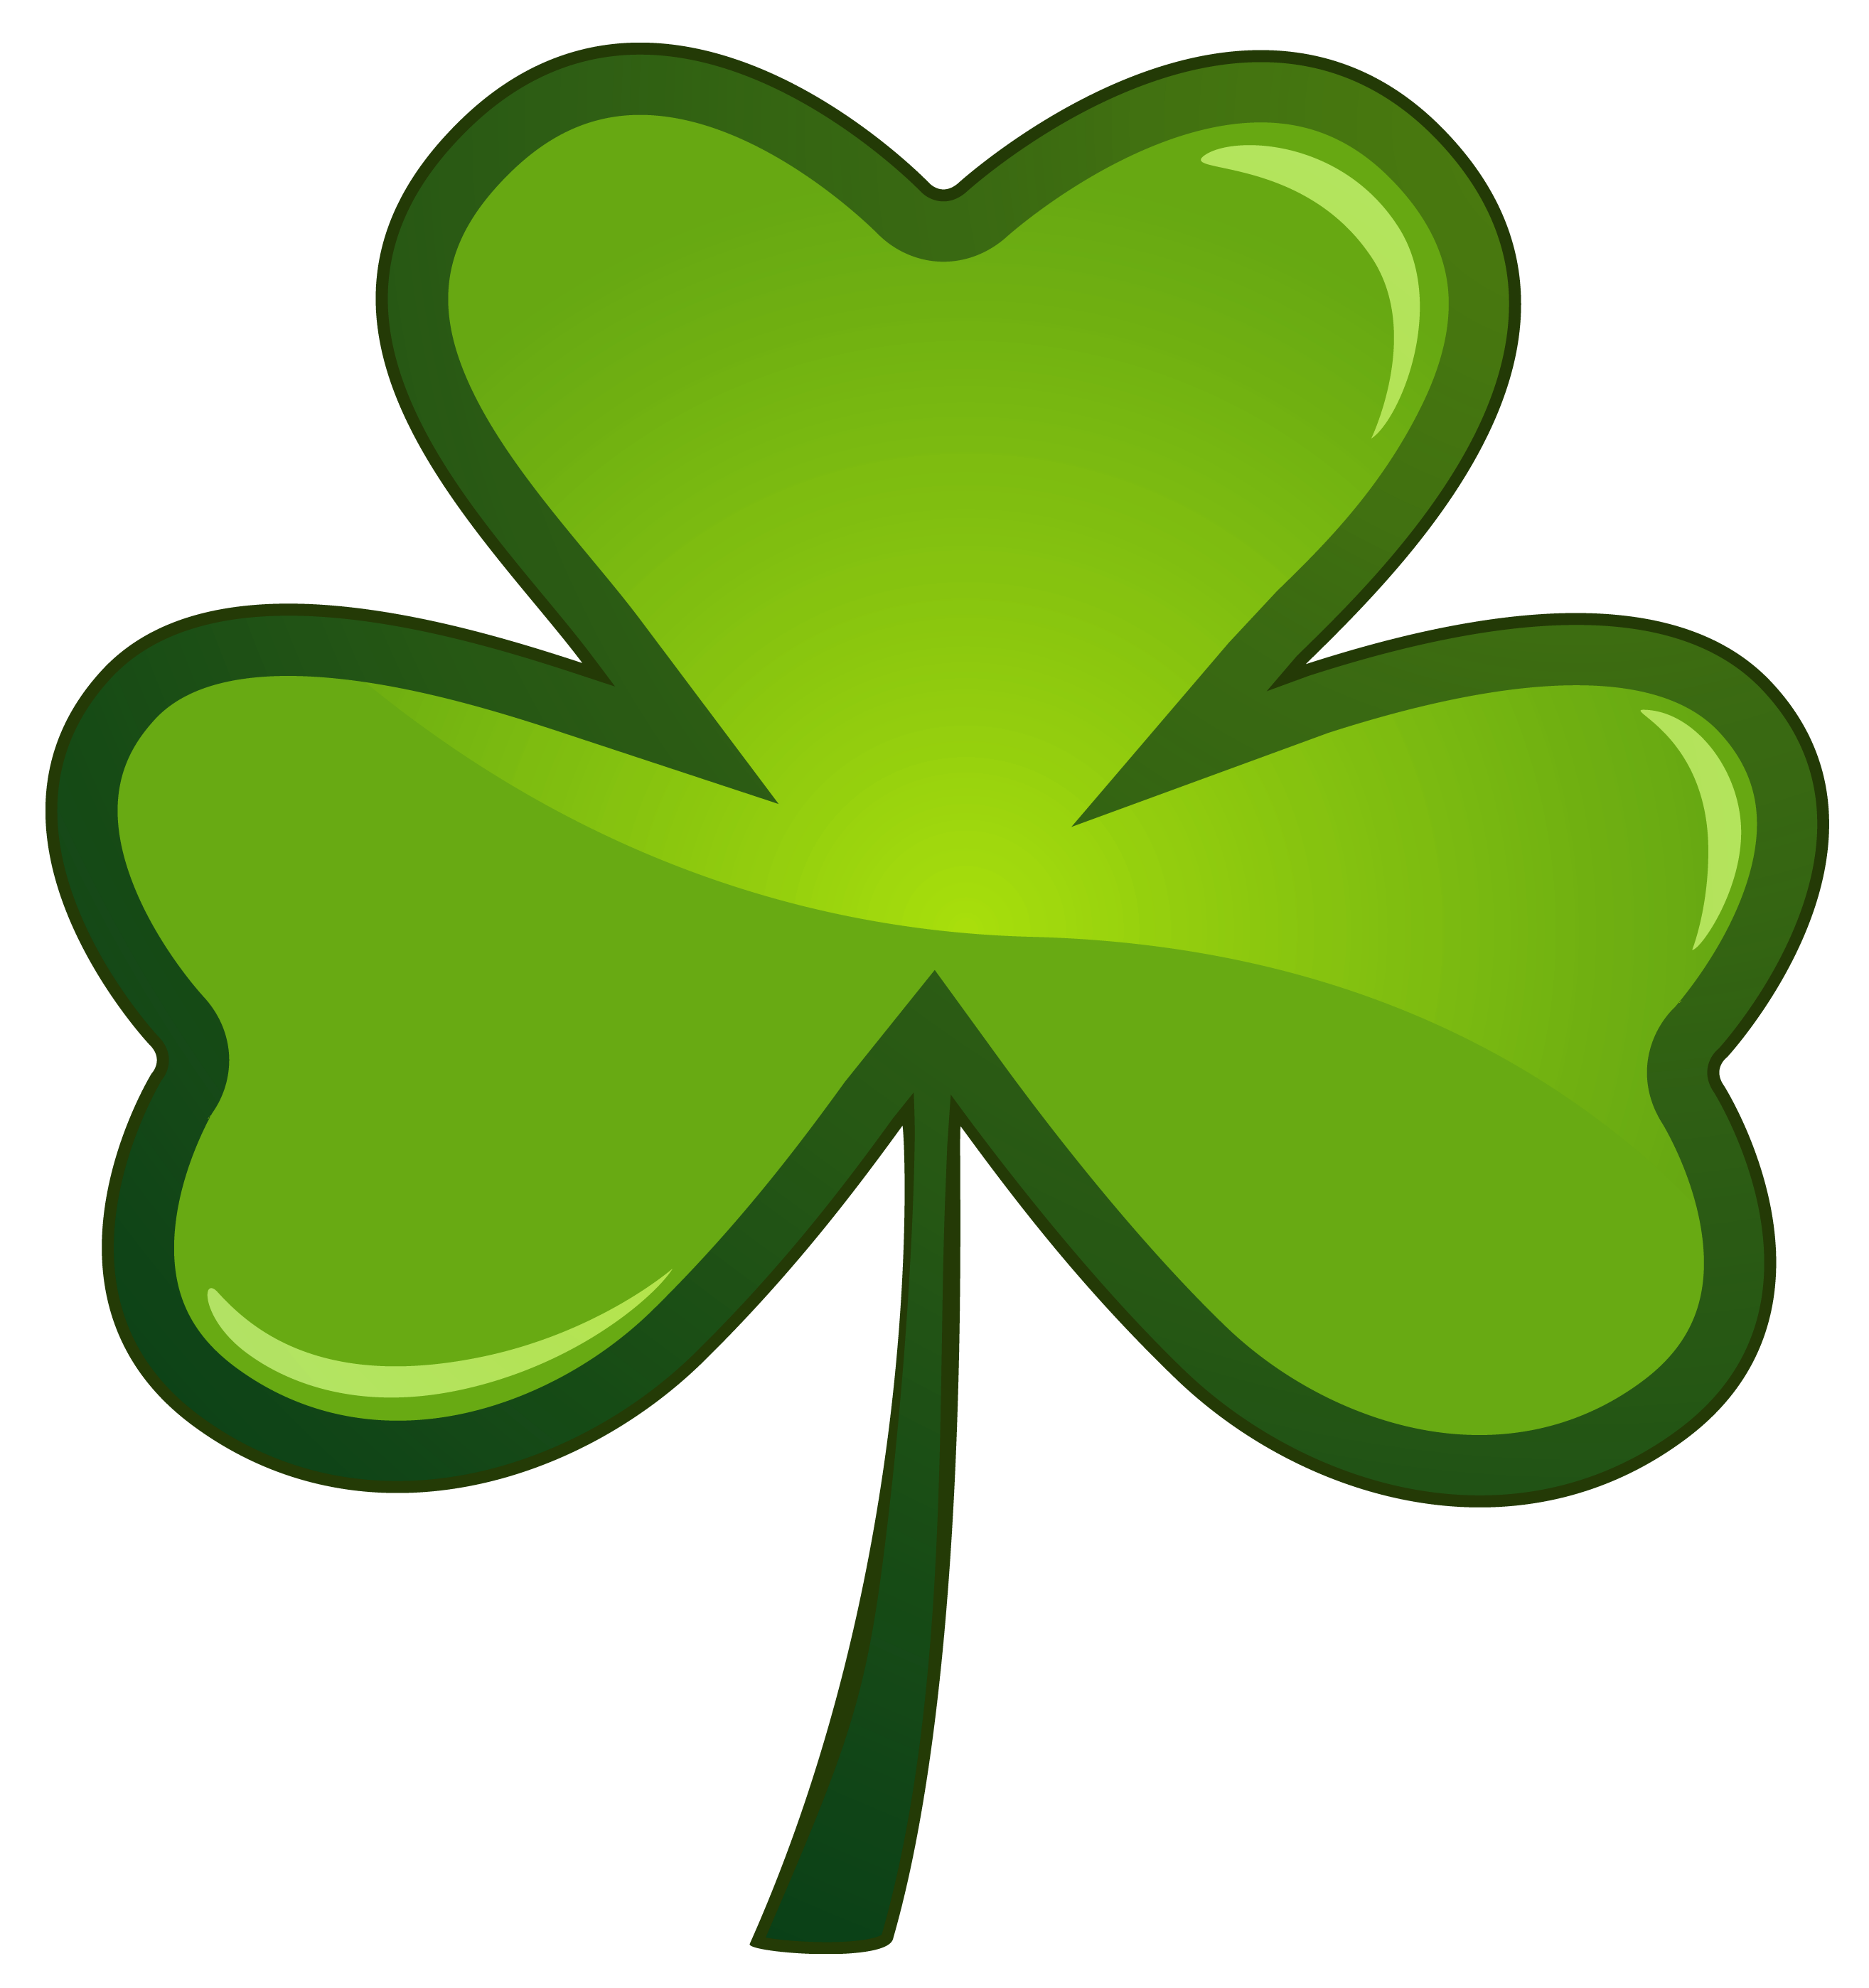 2629x2797 Crammed Free St Patricks Day Clipart Patrick S Horseshoe Png Clip